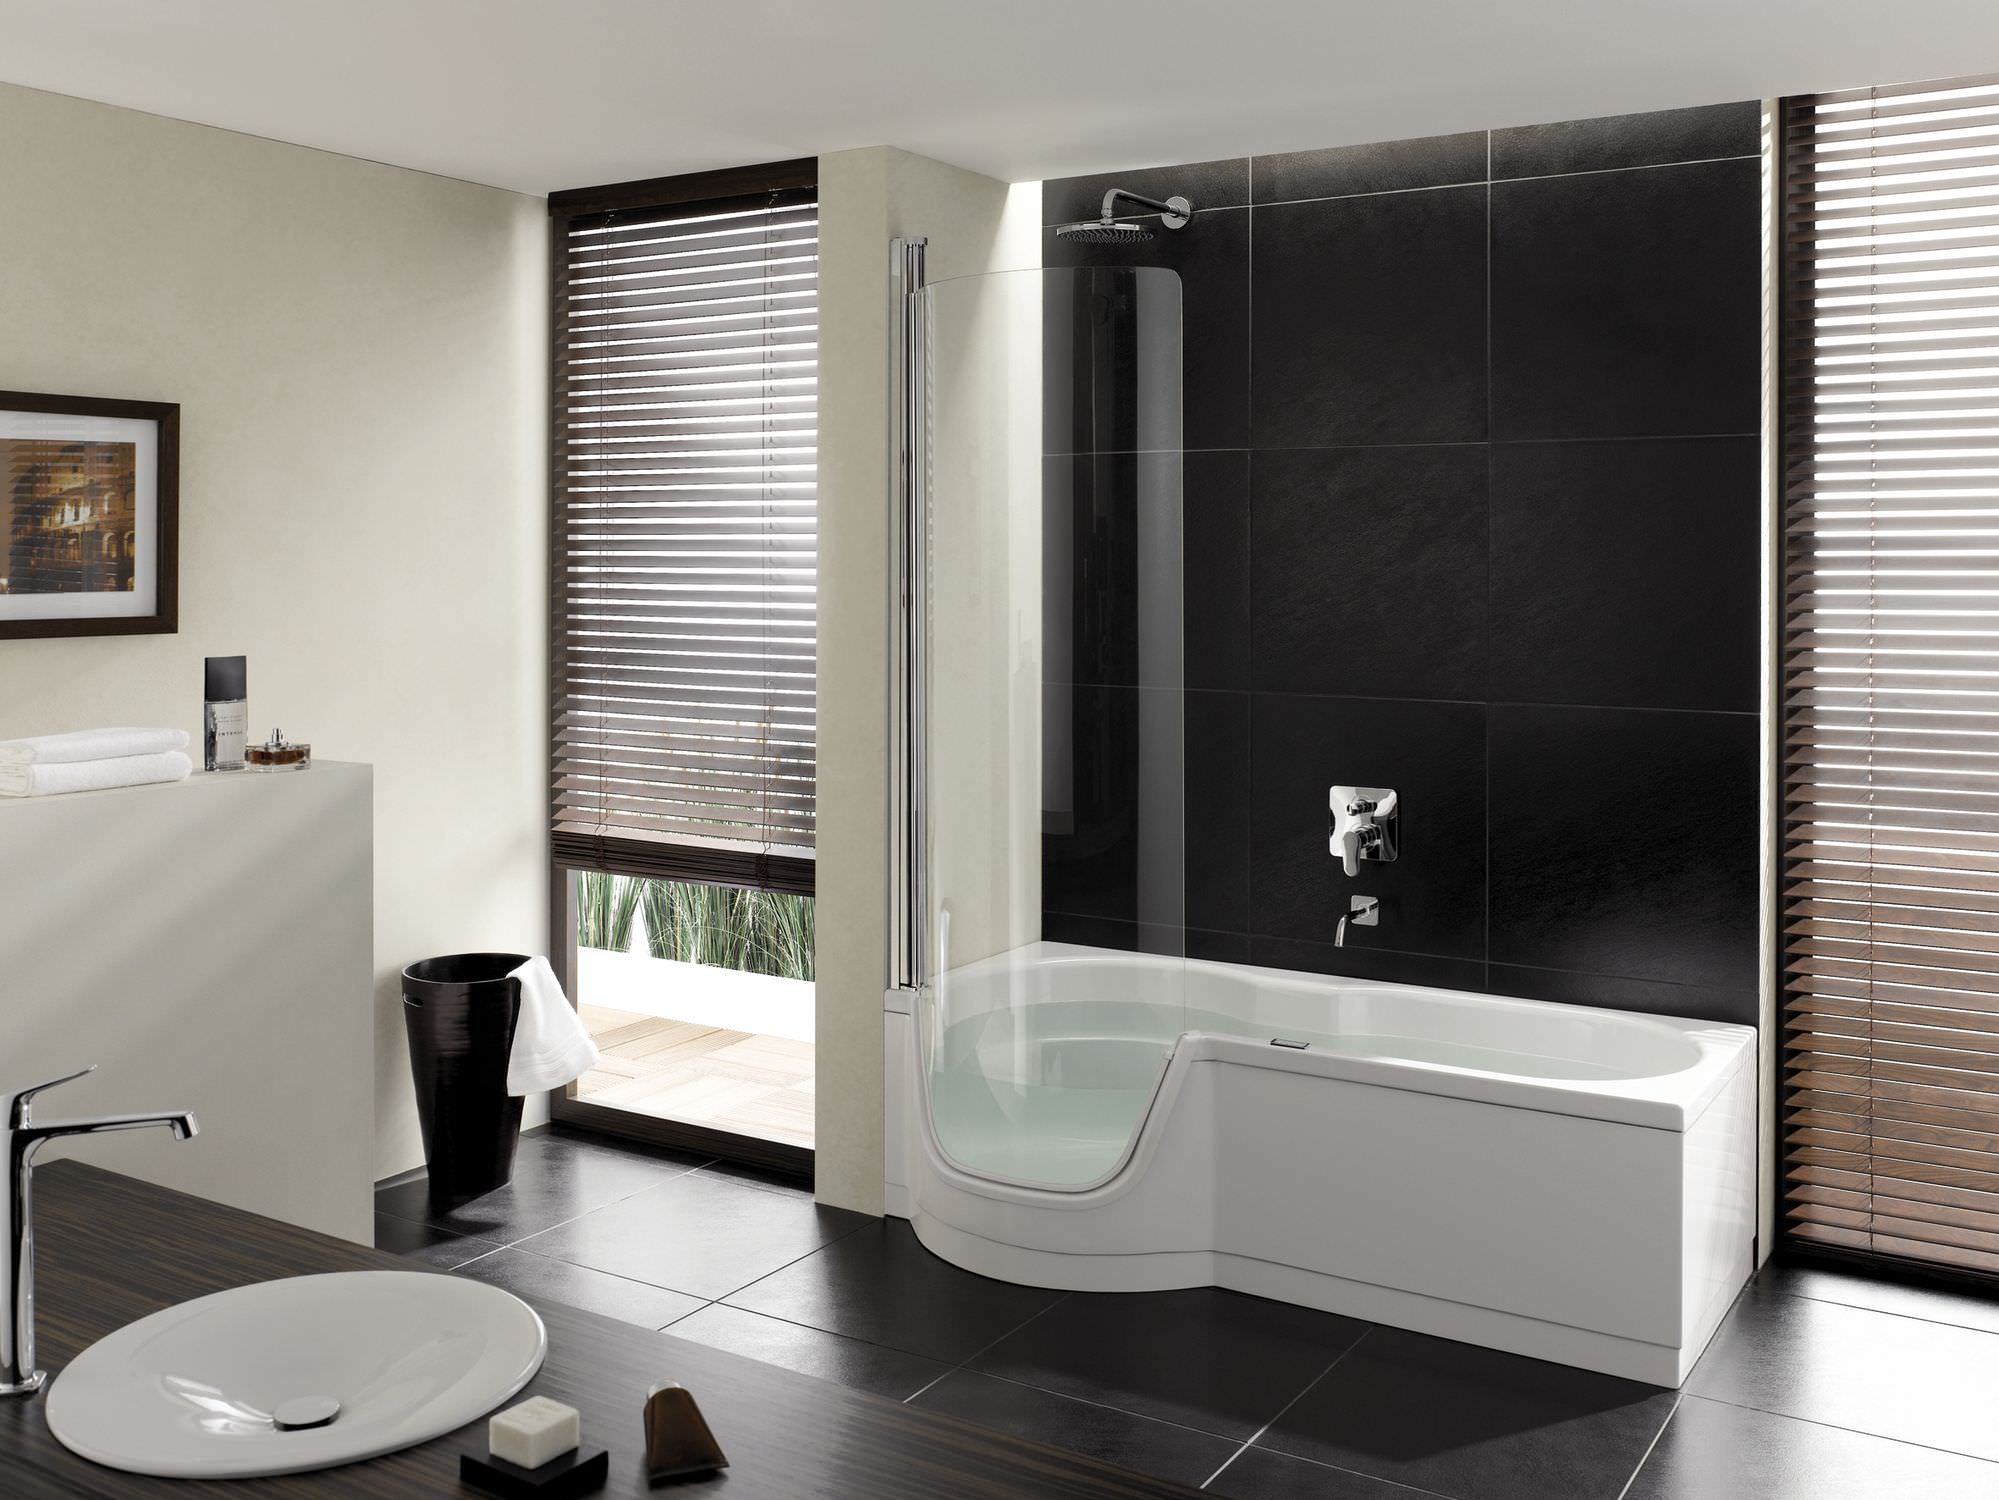 white-wall-paint-bathtub-stainless-steel-faucet-head-glasss-window-panel-dark-gray-ceramic-flooring-tile-small-real-wood-vanity-washbasin-the-latest-styles-and-designs-of-bathroom-showrooms